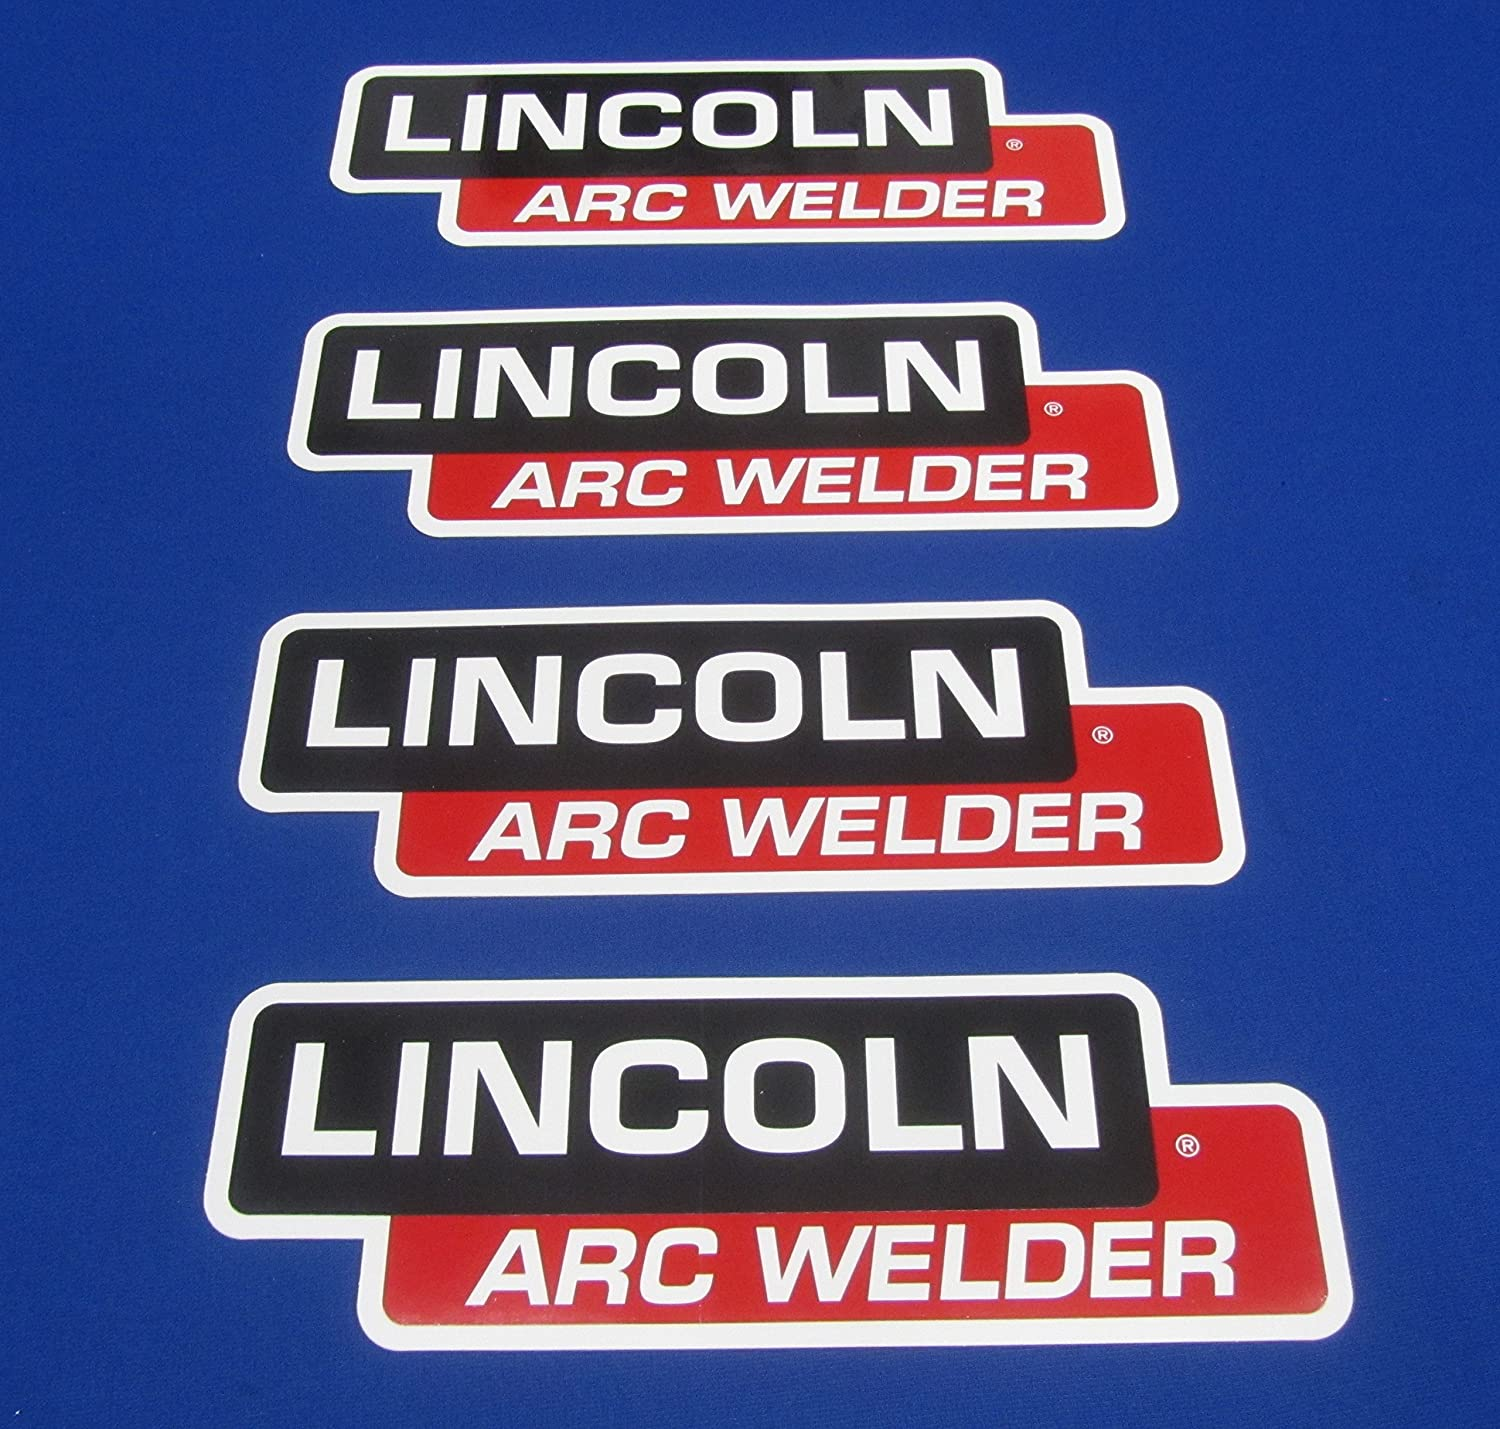 4 Lot Oem Hood Decal Fits Lincoln Arc Welder Sa 200 250 Sae 300 400 Custom Parts Pipeline Industrial Scientific